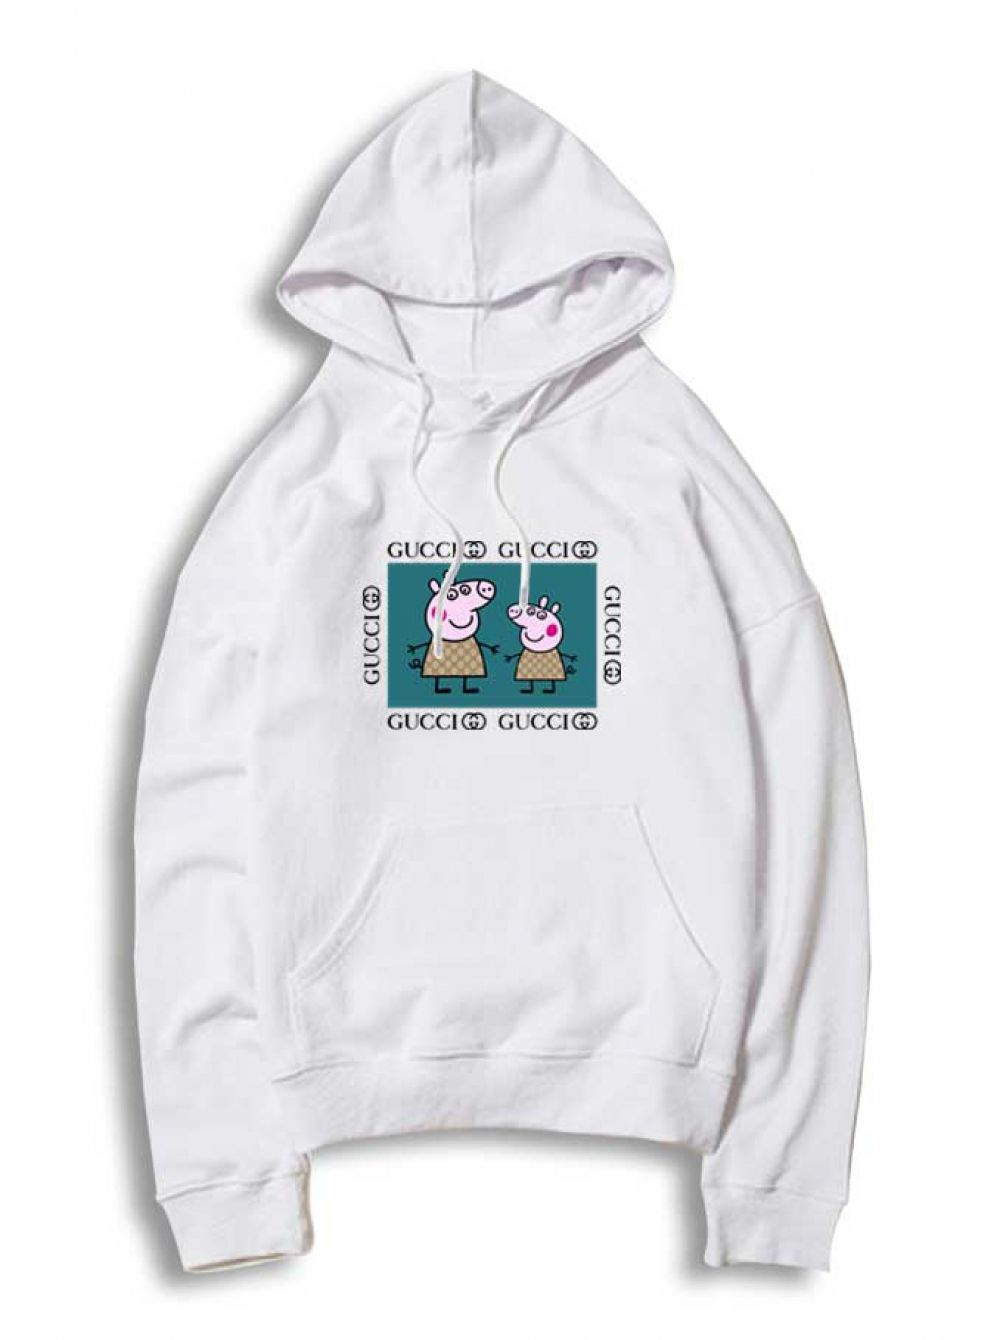 b115f9411a8d Peppa Pig Life Gucci Parody White Hoodie #Tee #Hype #Outfits #Outfit  #Hypebeast #fashion #shirt #Tees #Tops #Teen